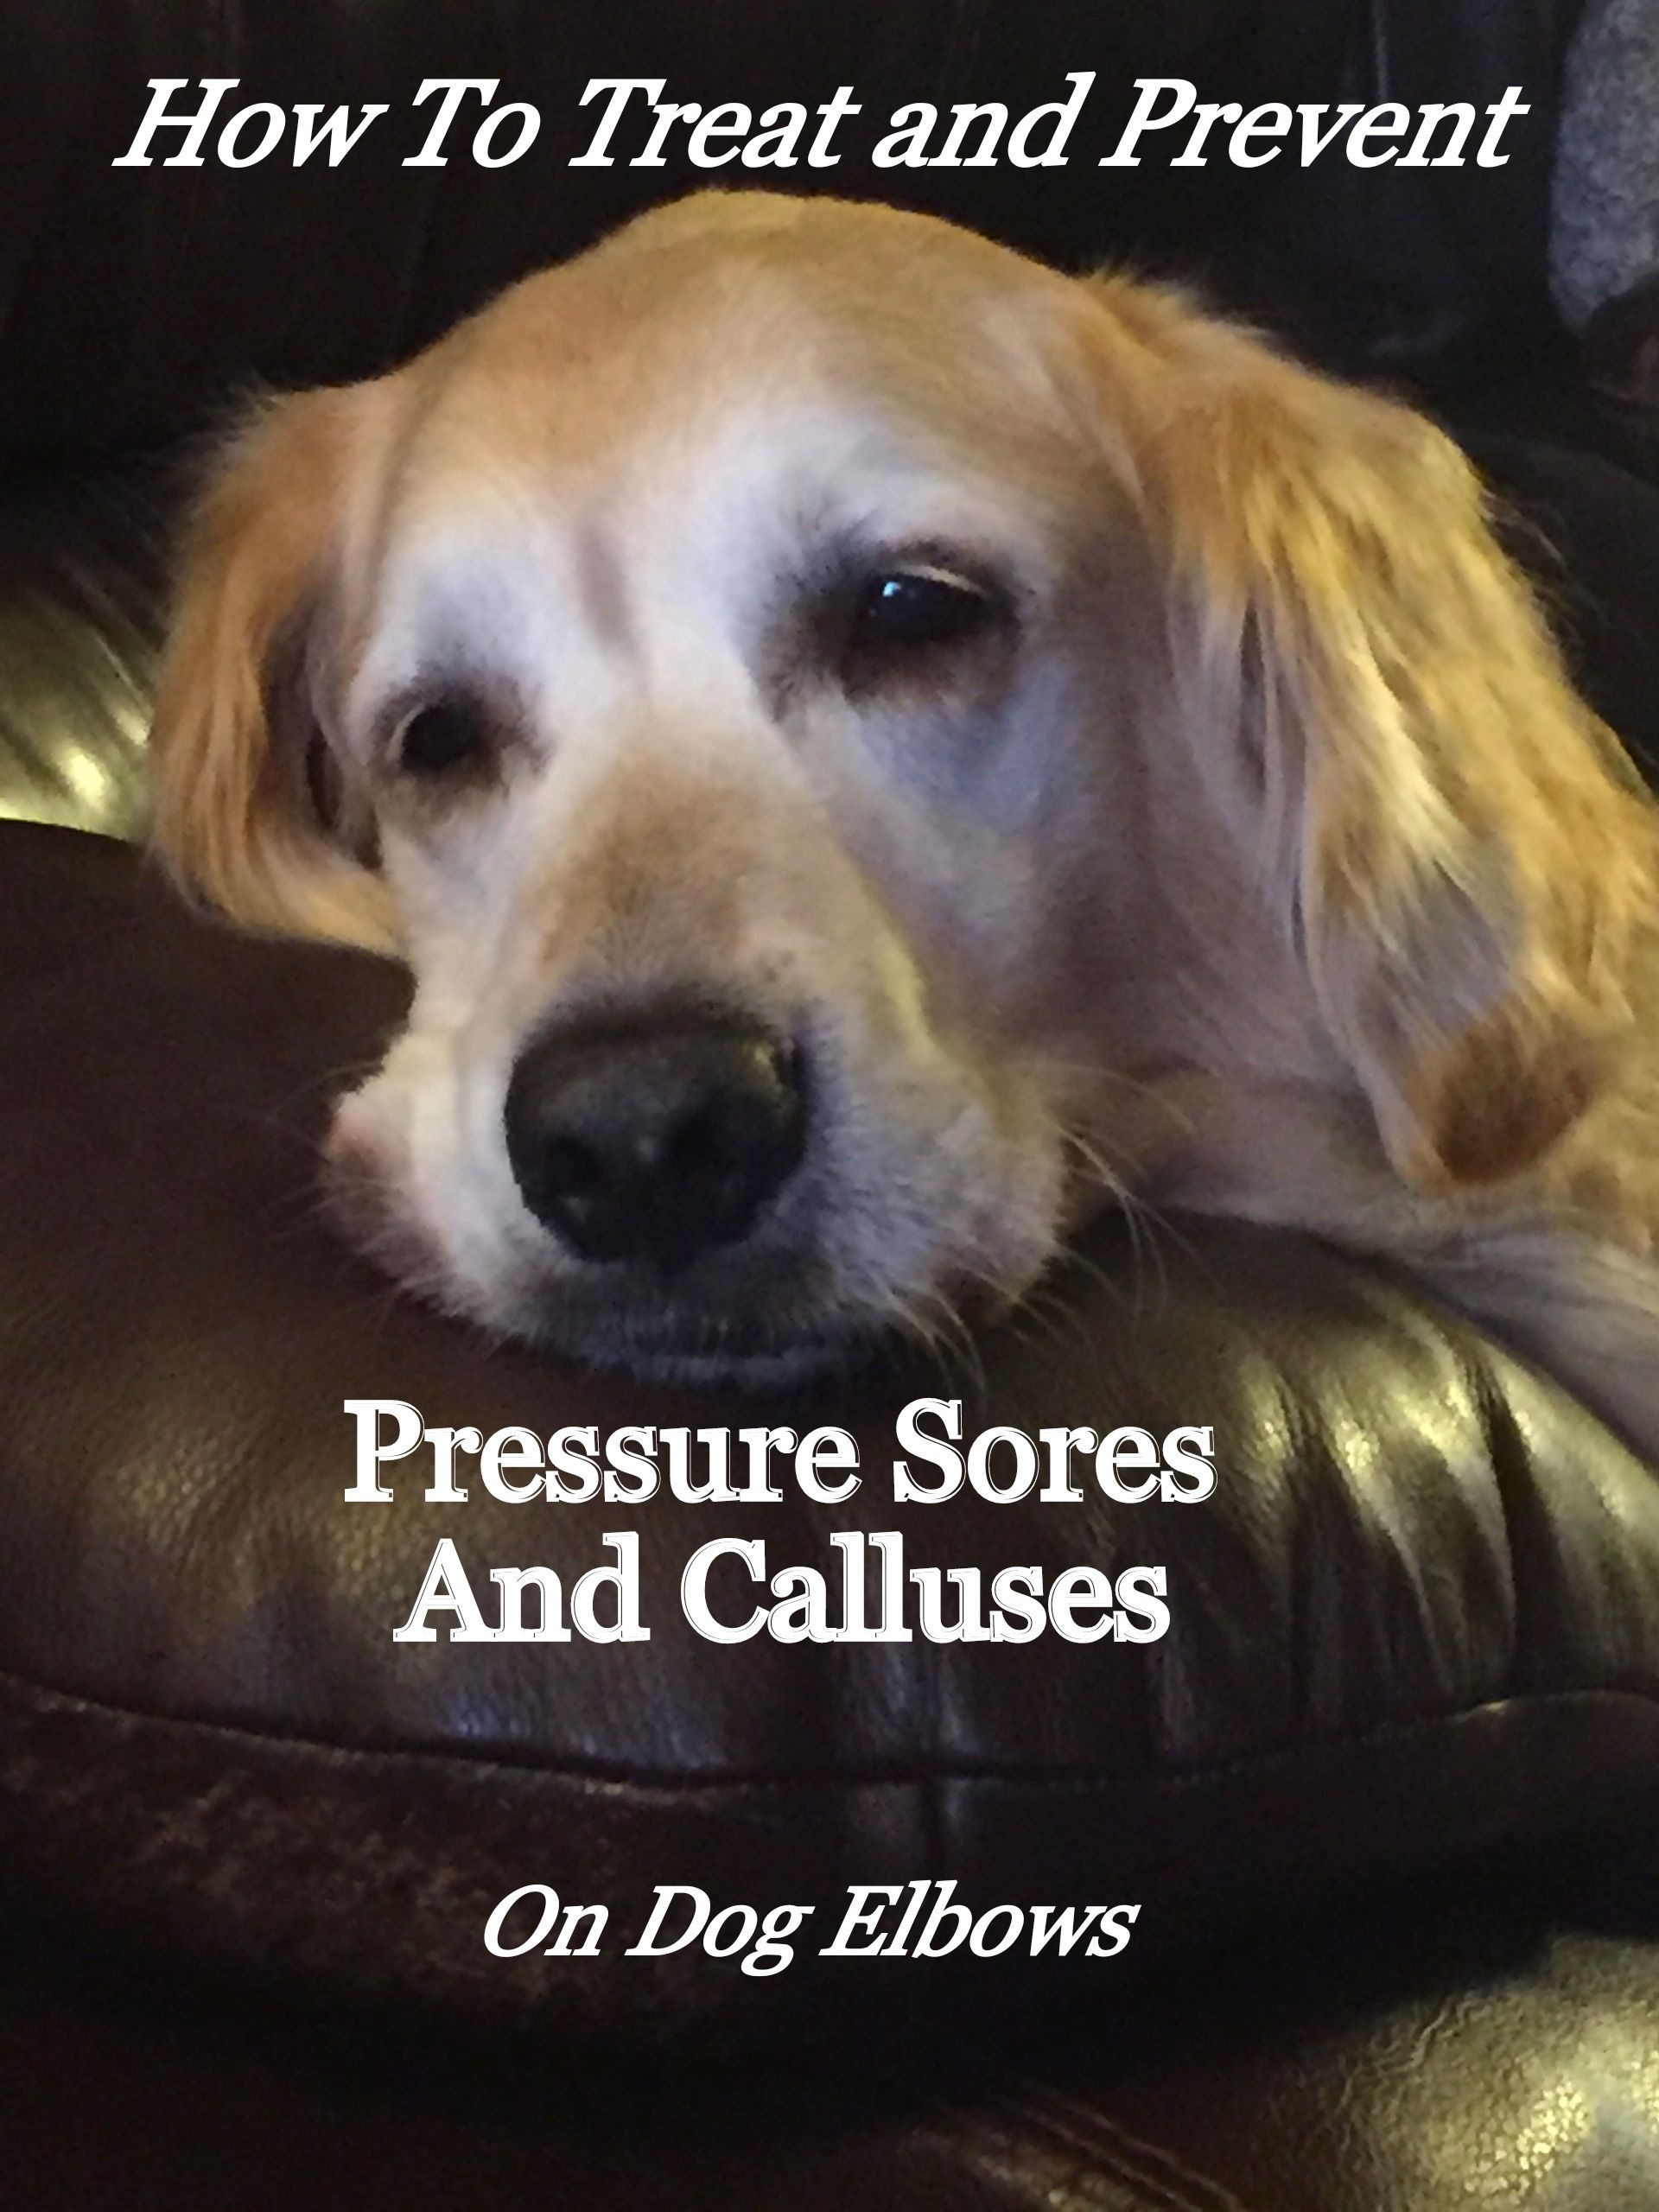 How to Treat and Prevent Calluses on Dog Elbows That Can